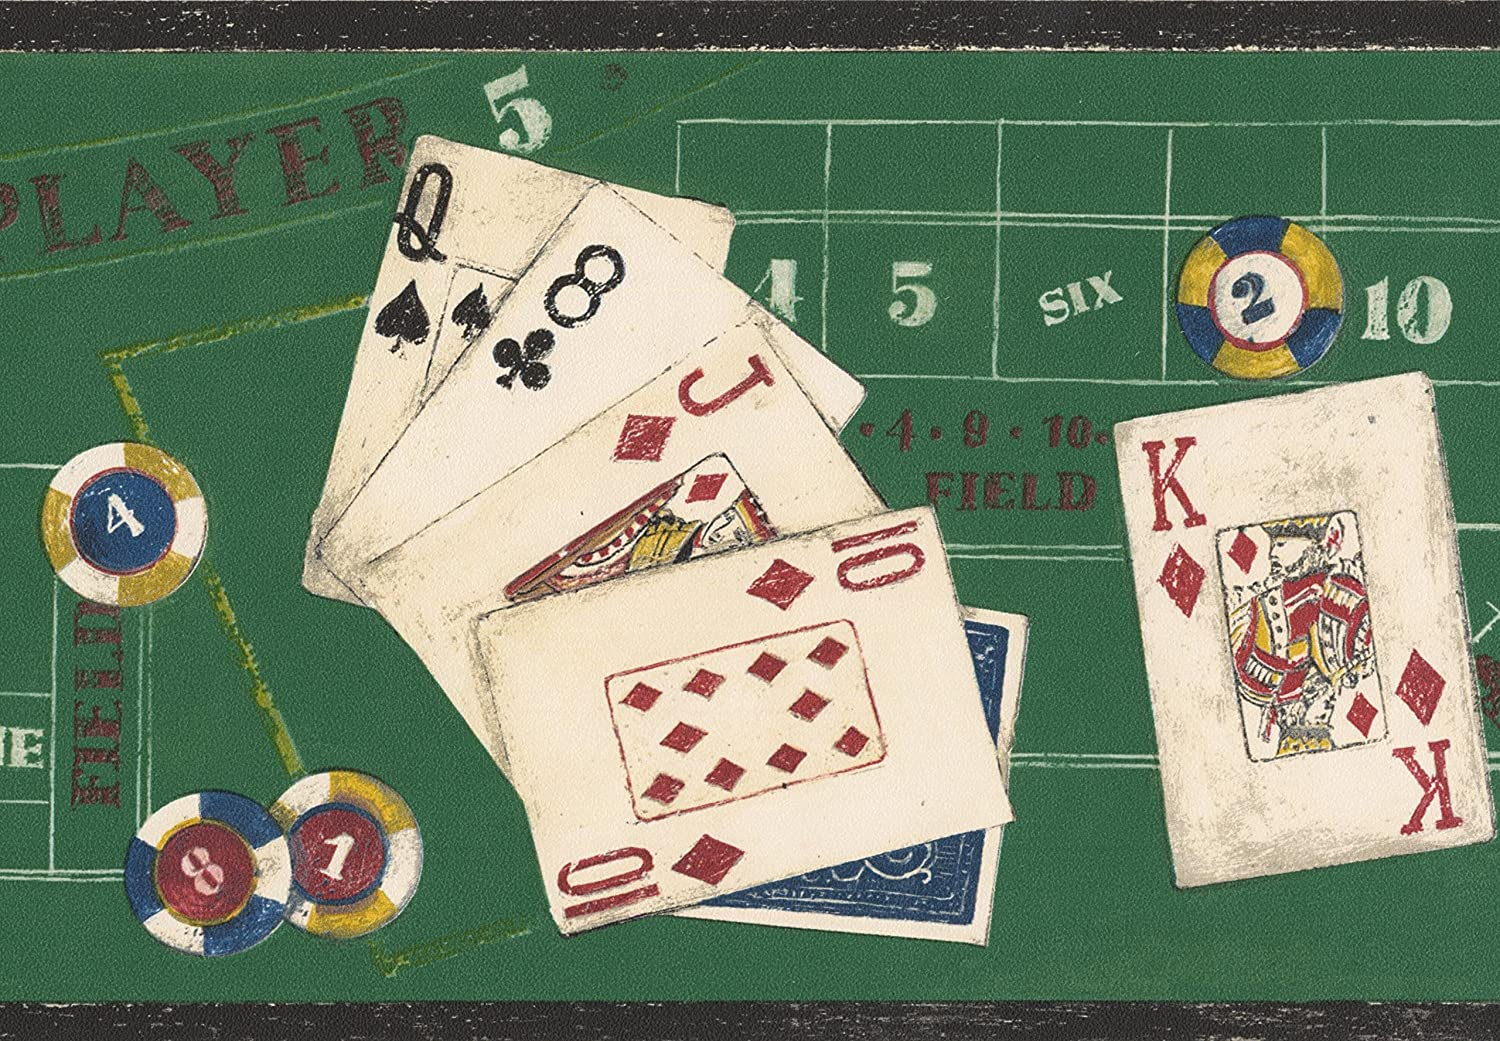 Poker Chips Cards On Casino Table Green Wallpaper Border Abstract